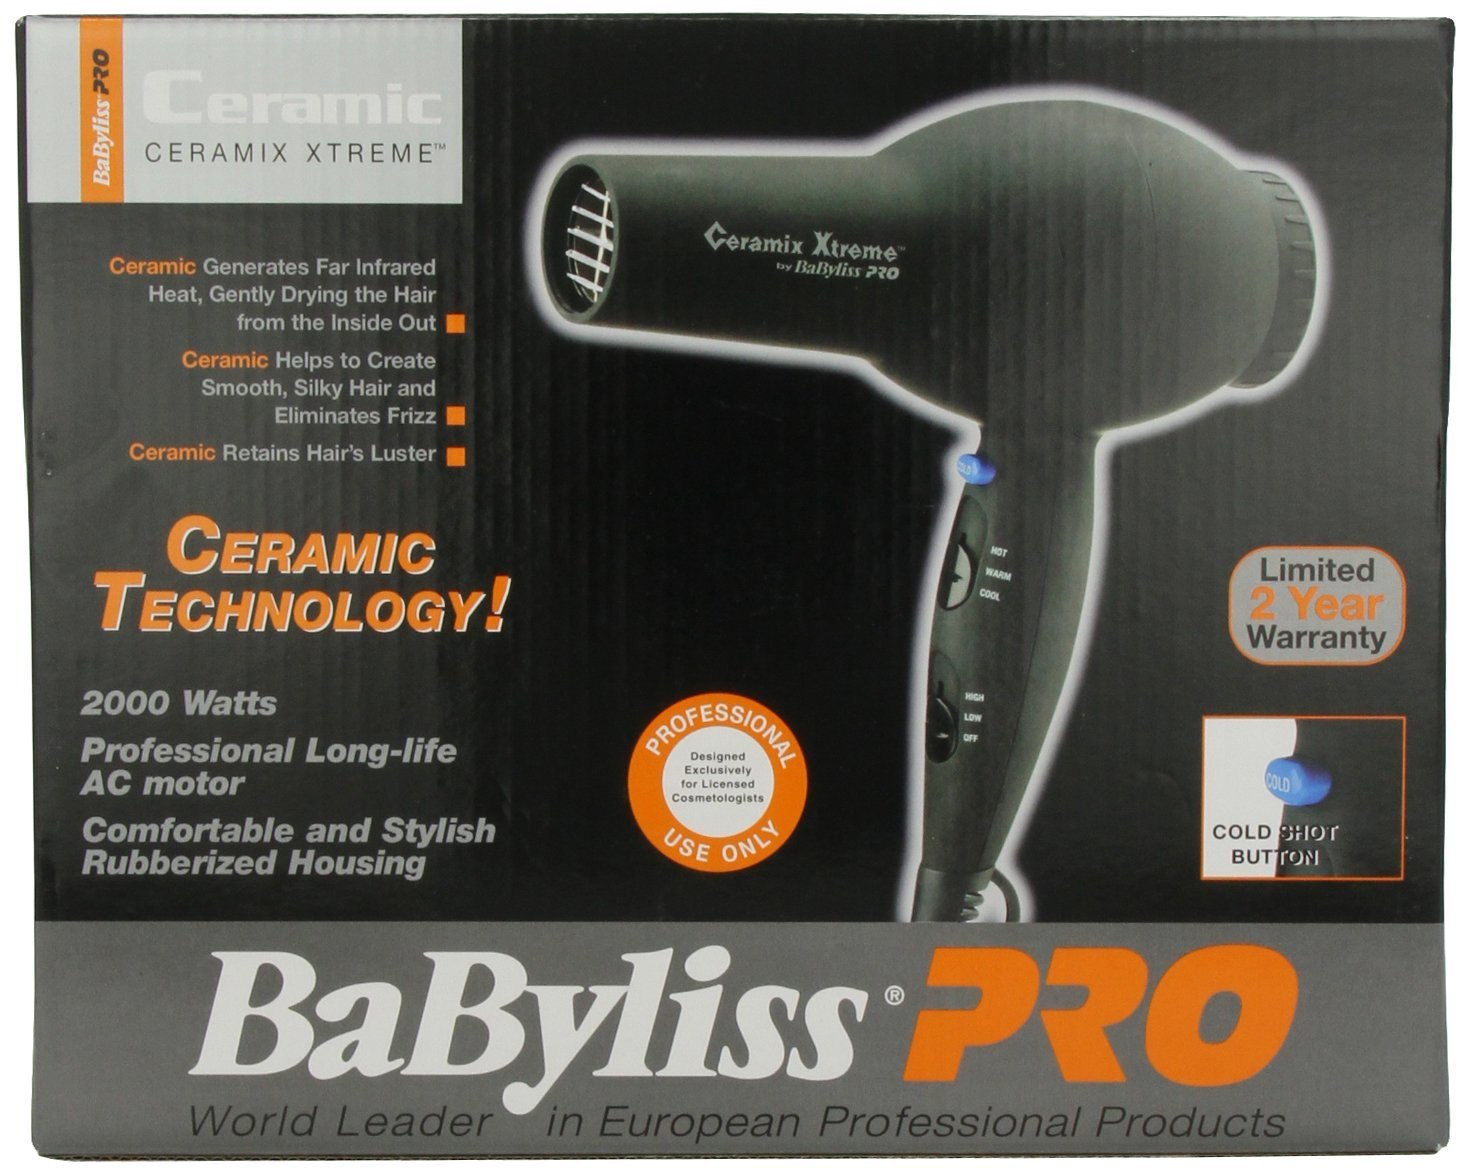 BaByliss Pro Ceramix Xtreme - Best Hair Dryer Reviews